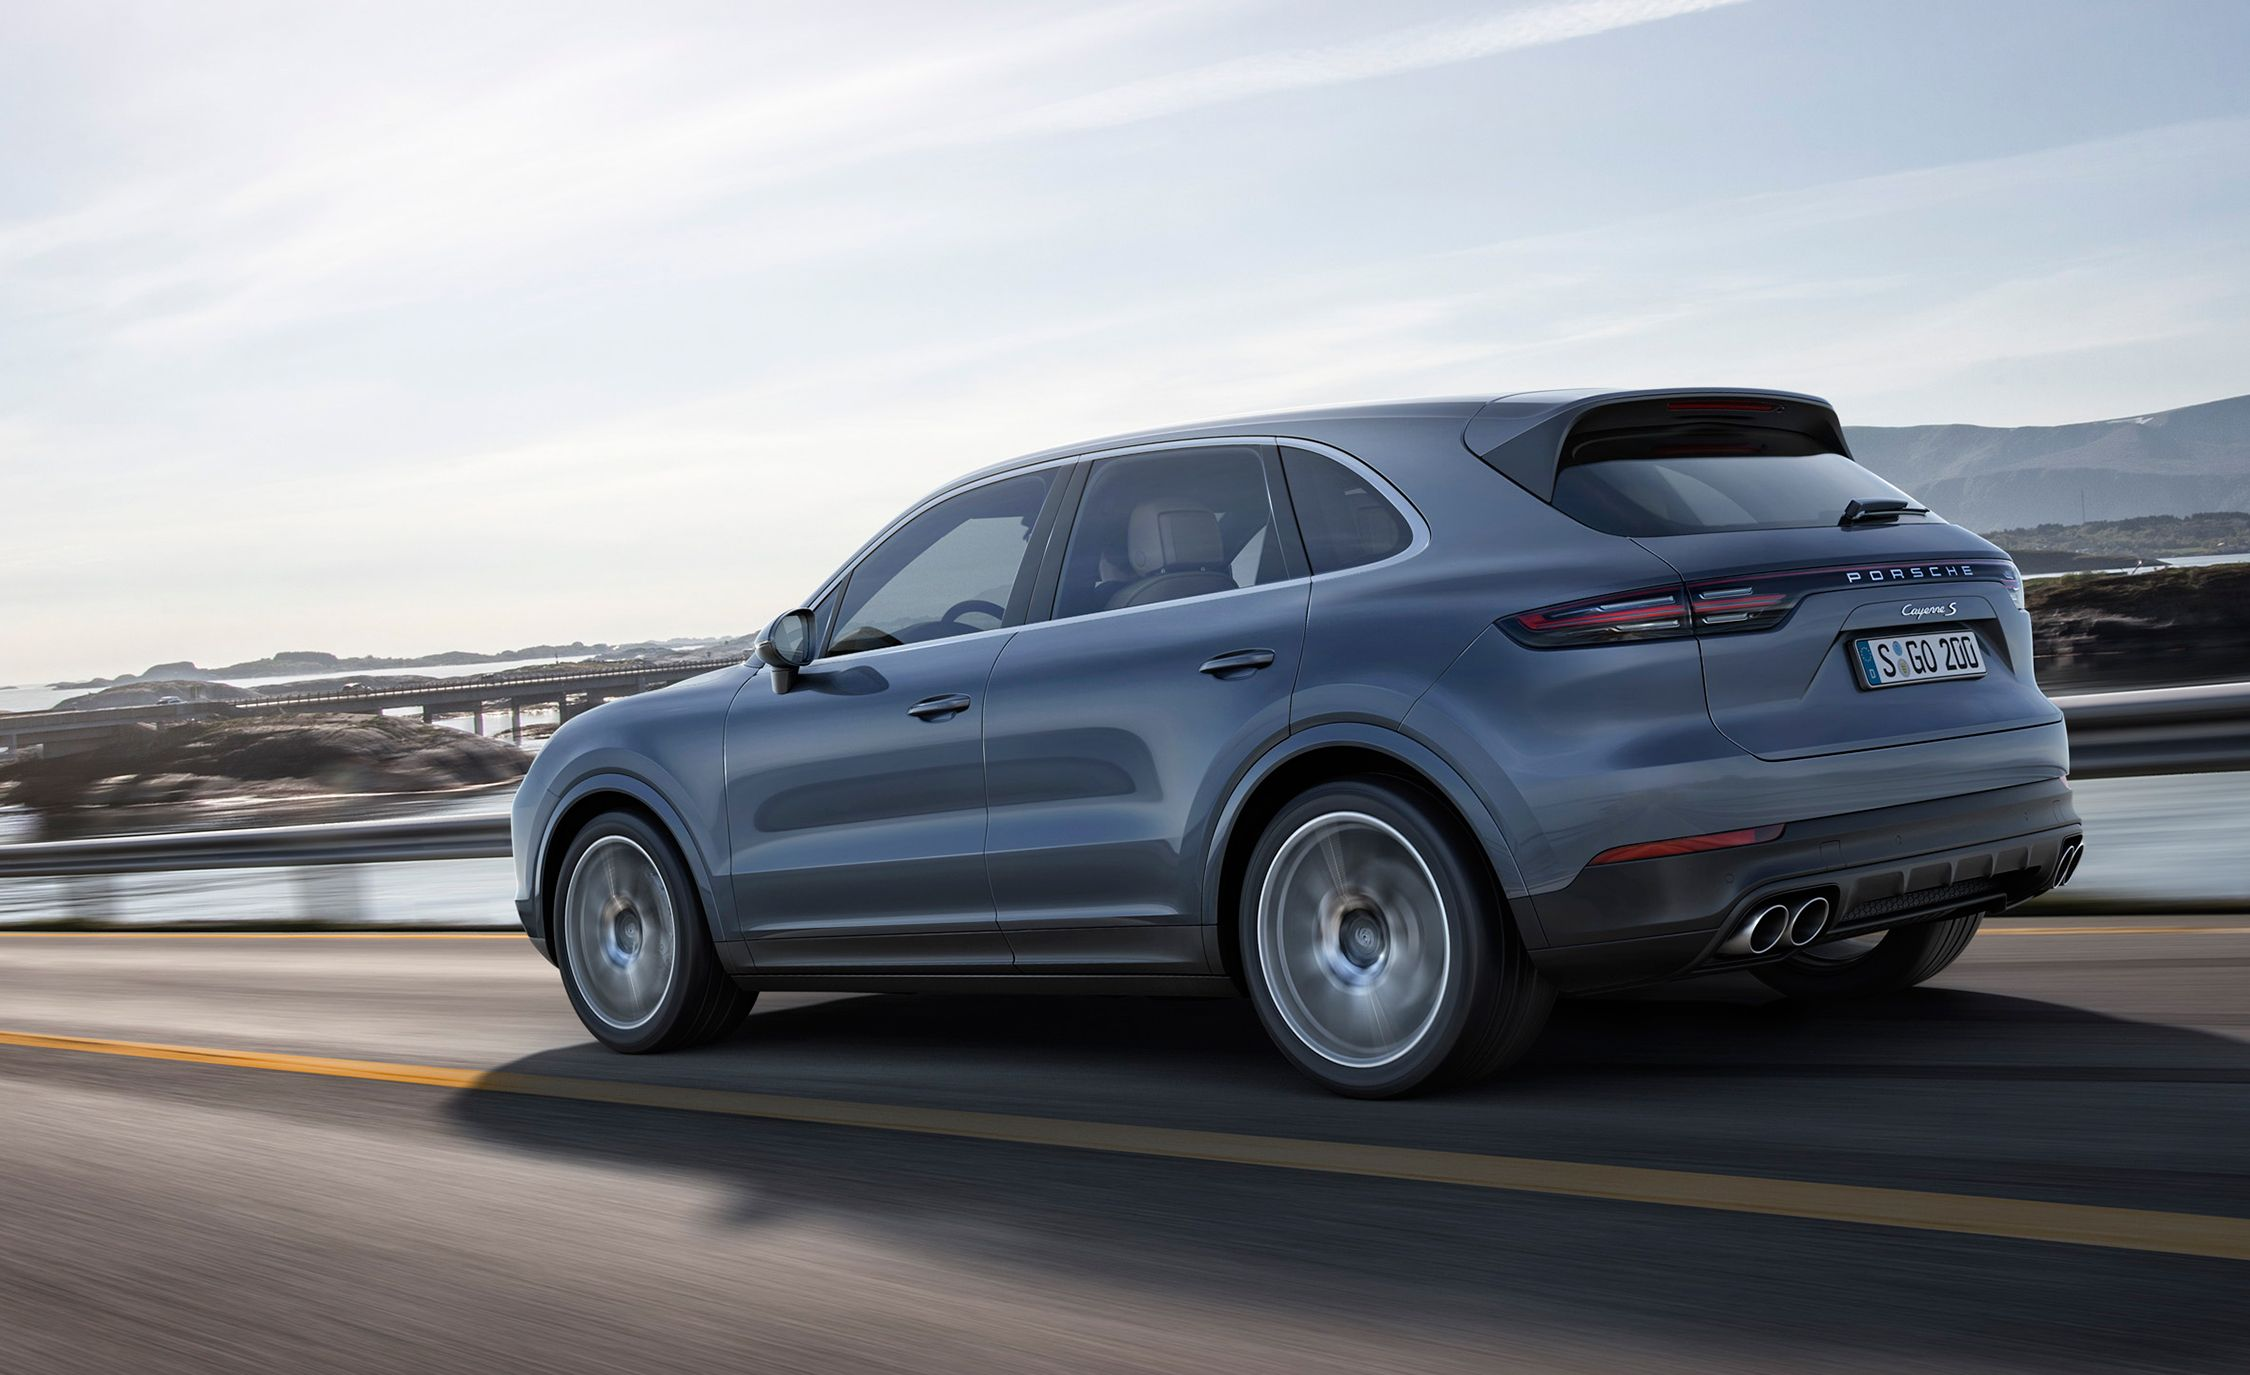 The Turbo Engineers >> The 10 Coolest New Features on the 2019 Porsche Cayenne